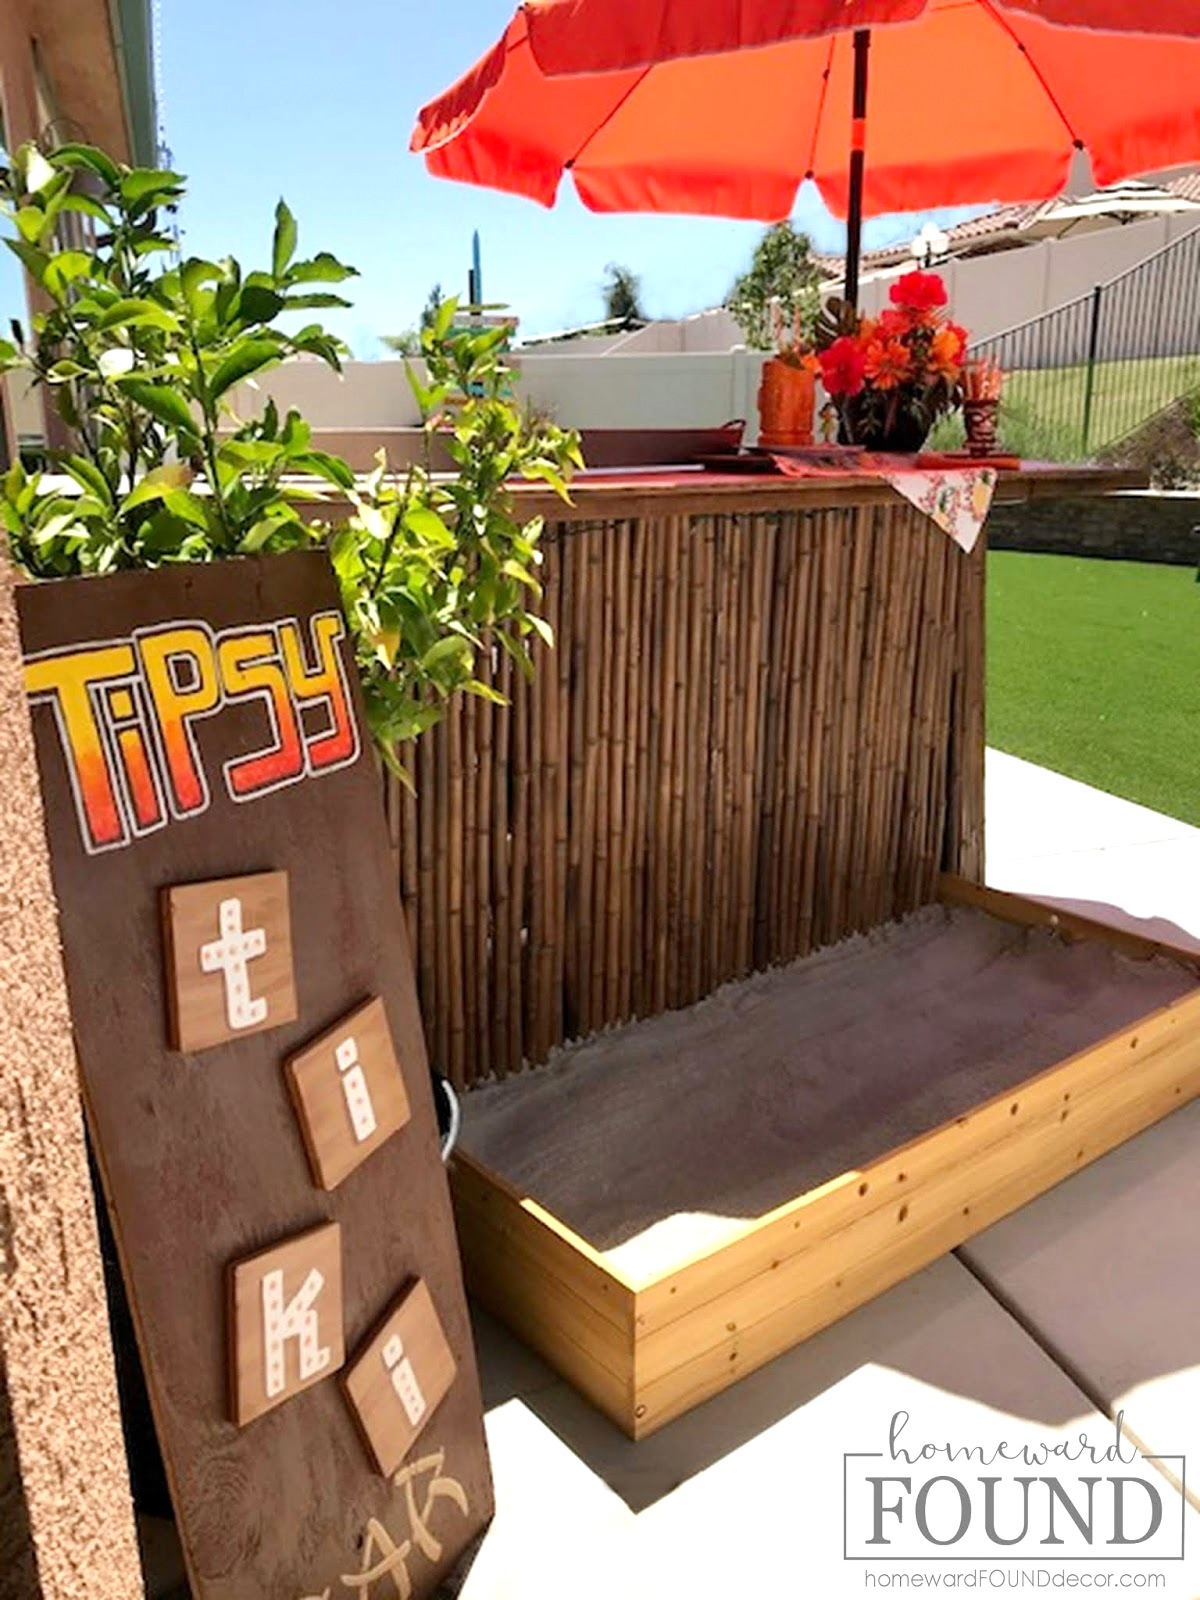 Backyard tiki bar with sandbox by Homeward Found, featured on DIY Salvaged Junk Projects 530 on Funky Junk!